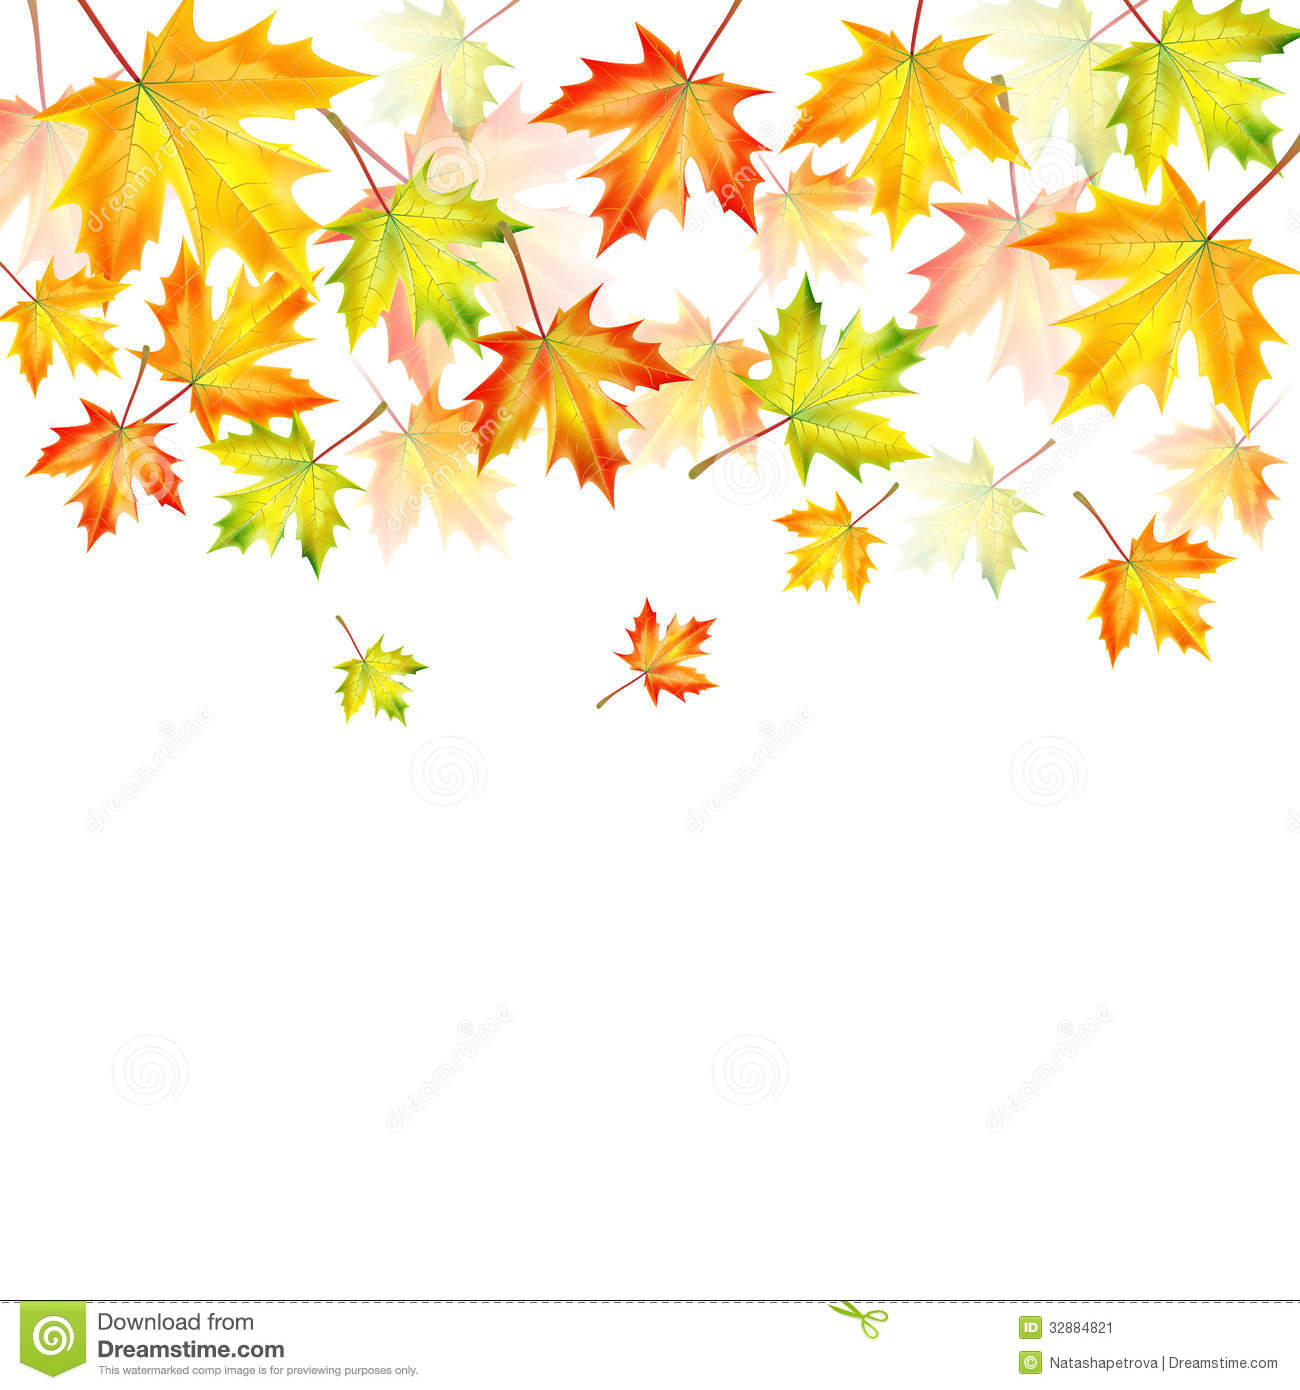 Free Fall Themed Desktop Wallpaper Autumn Background Stock Vector Illustration Of Free